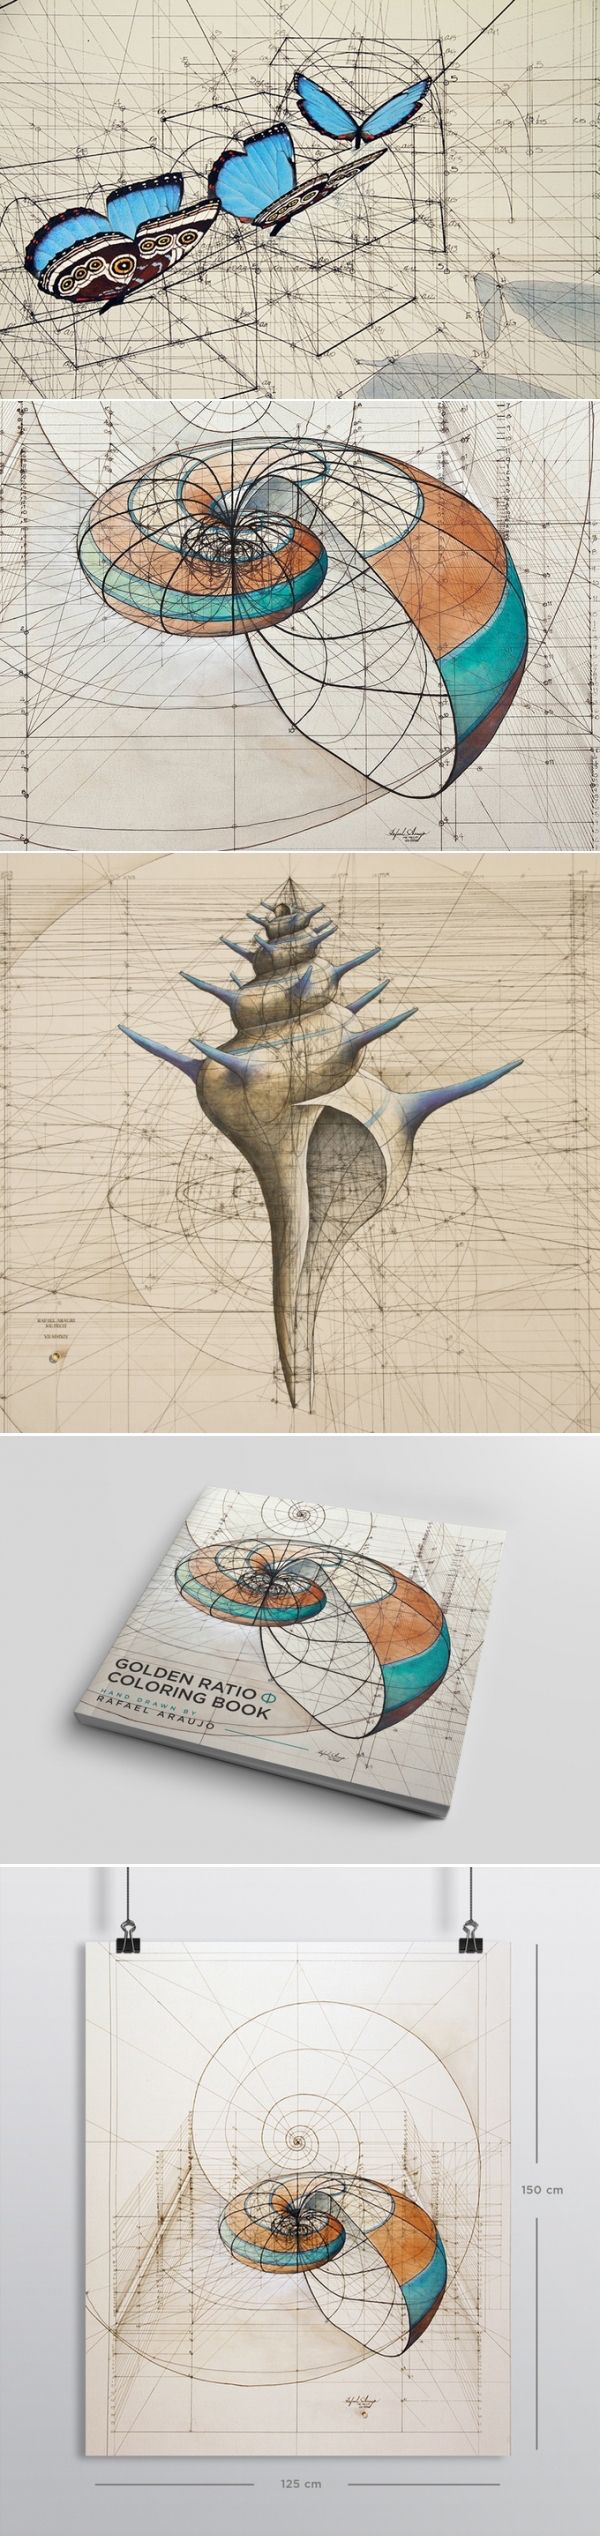 Poster design golden ratio - Omg This Is Amazing The Best Coloring Book Golden Ratio Coloring Book By